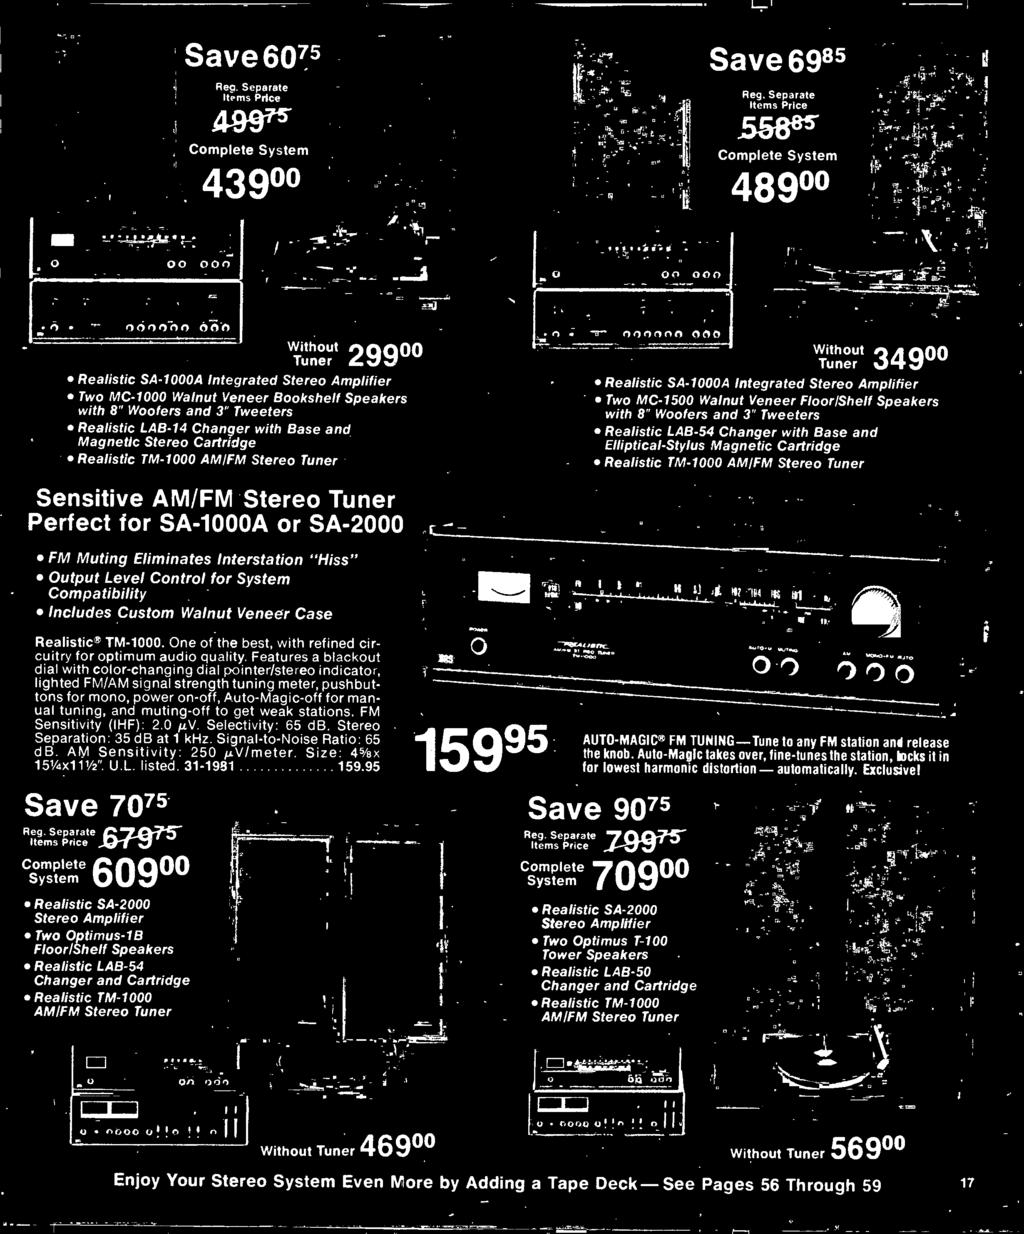 1977 Electronics Catalog Pdf Audio Amplifier Circuit With 2n3055 P Marian N Without Tuner Realistic Sa 1000a Integrated Stereo Two Mc 1500 Walnut Veneer